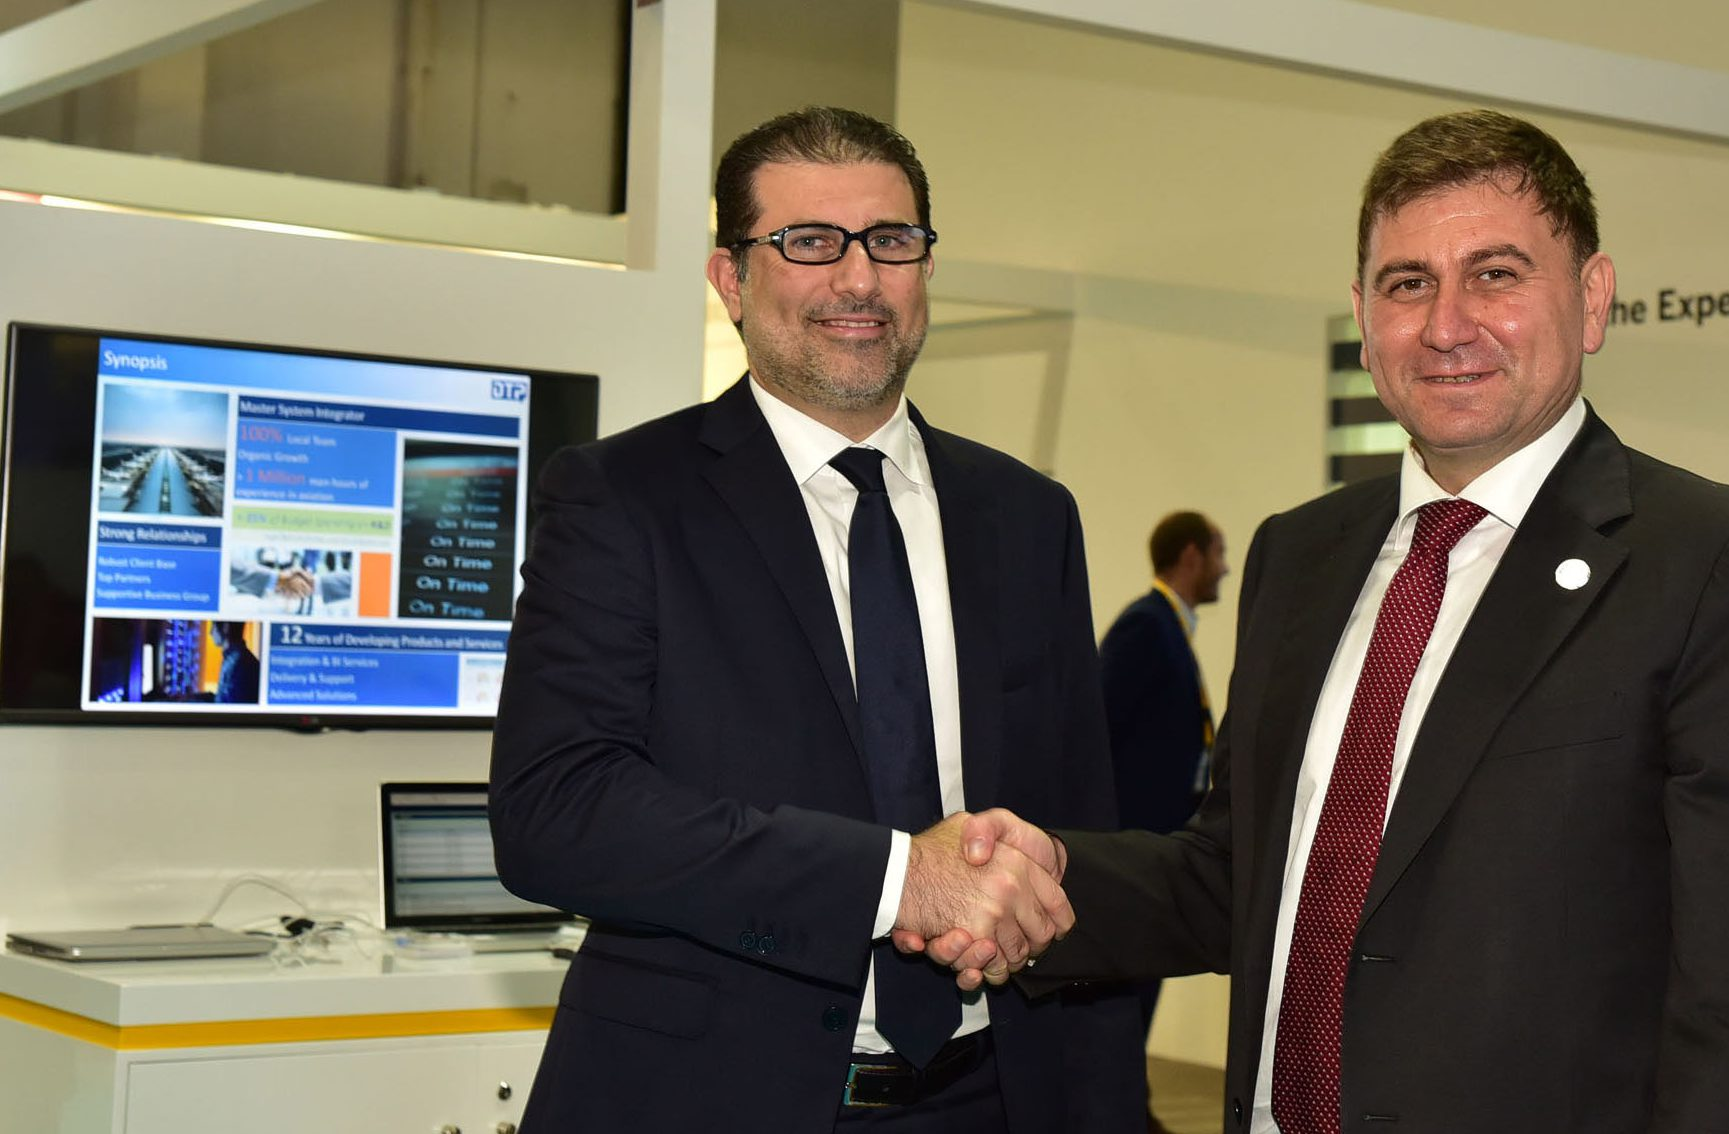 DTP presents aviation solutions running on SAP HANA at Gitex 2016